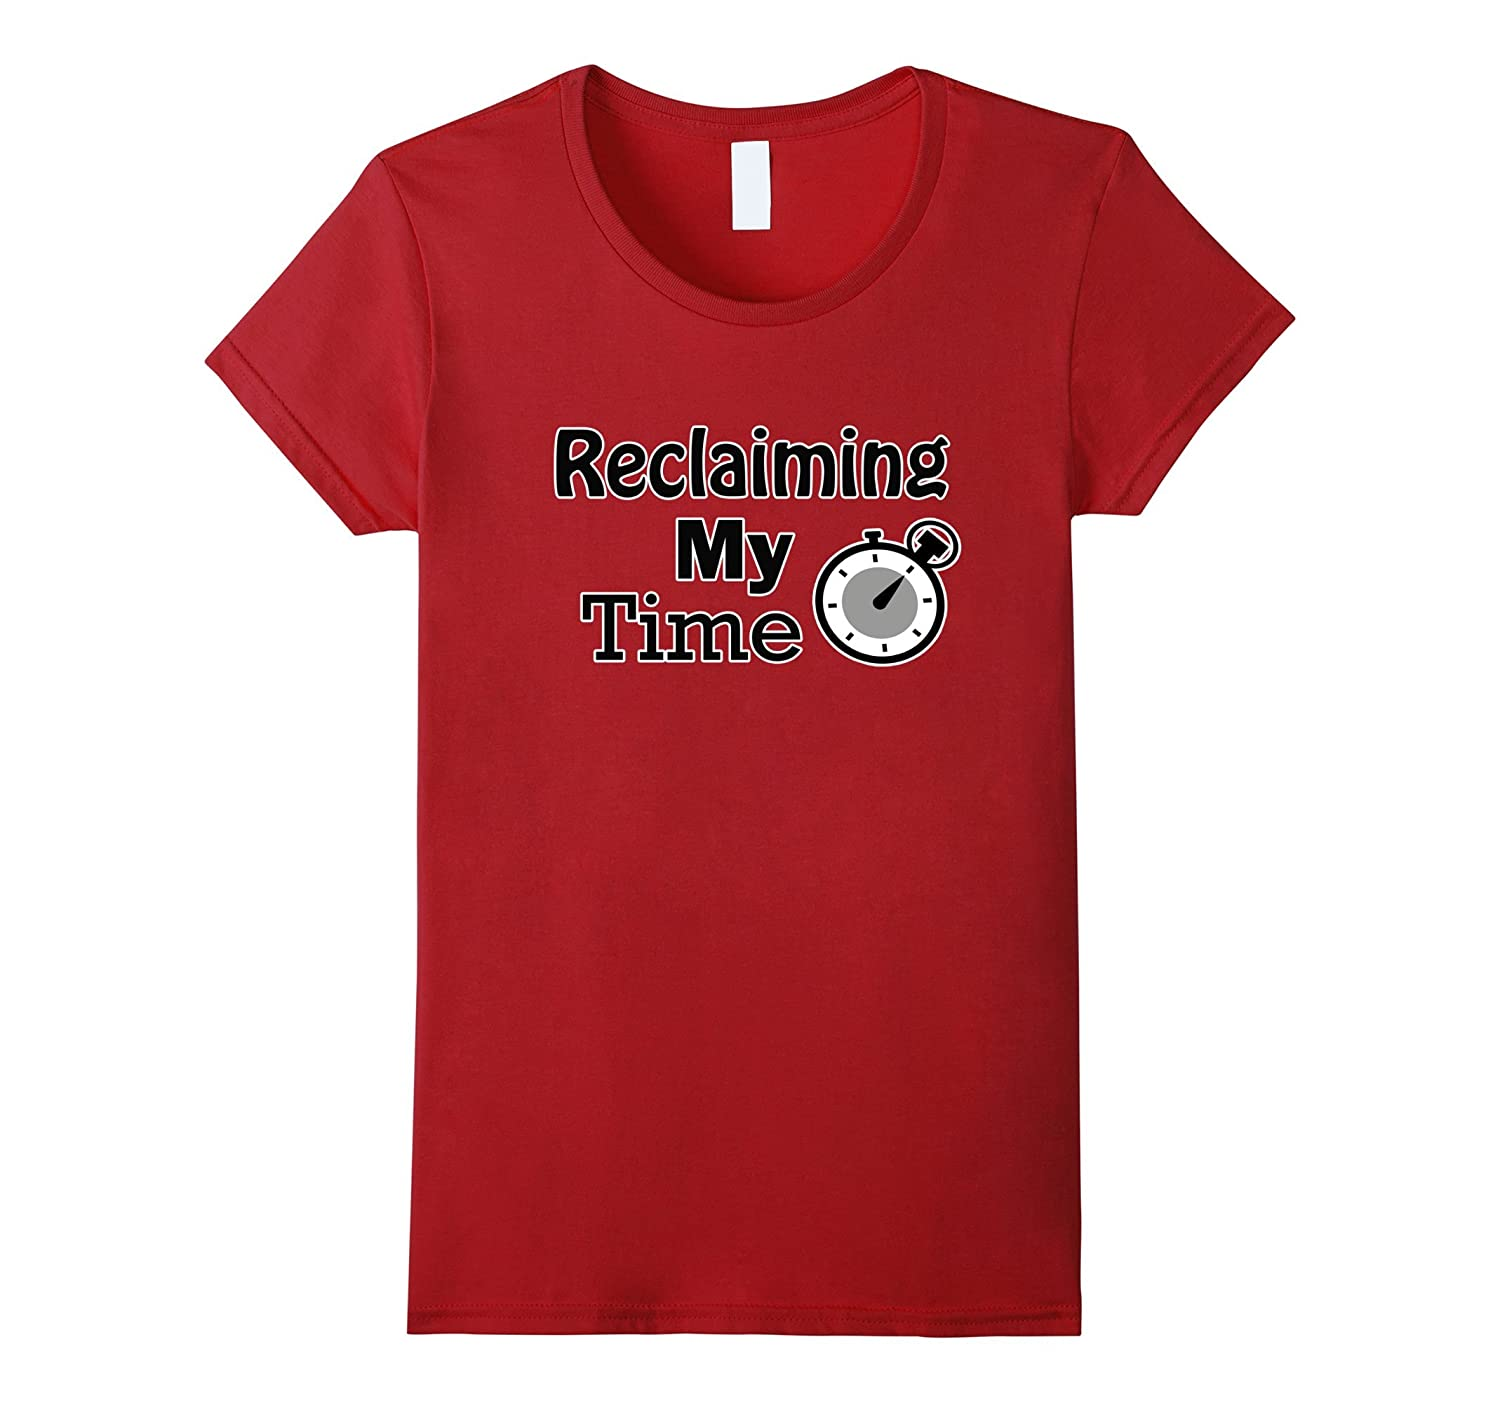 Got2BSnazzy: Reclaiming My Time T-shirt